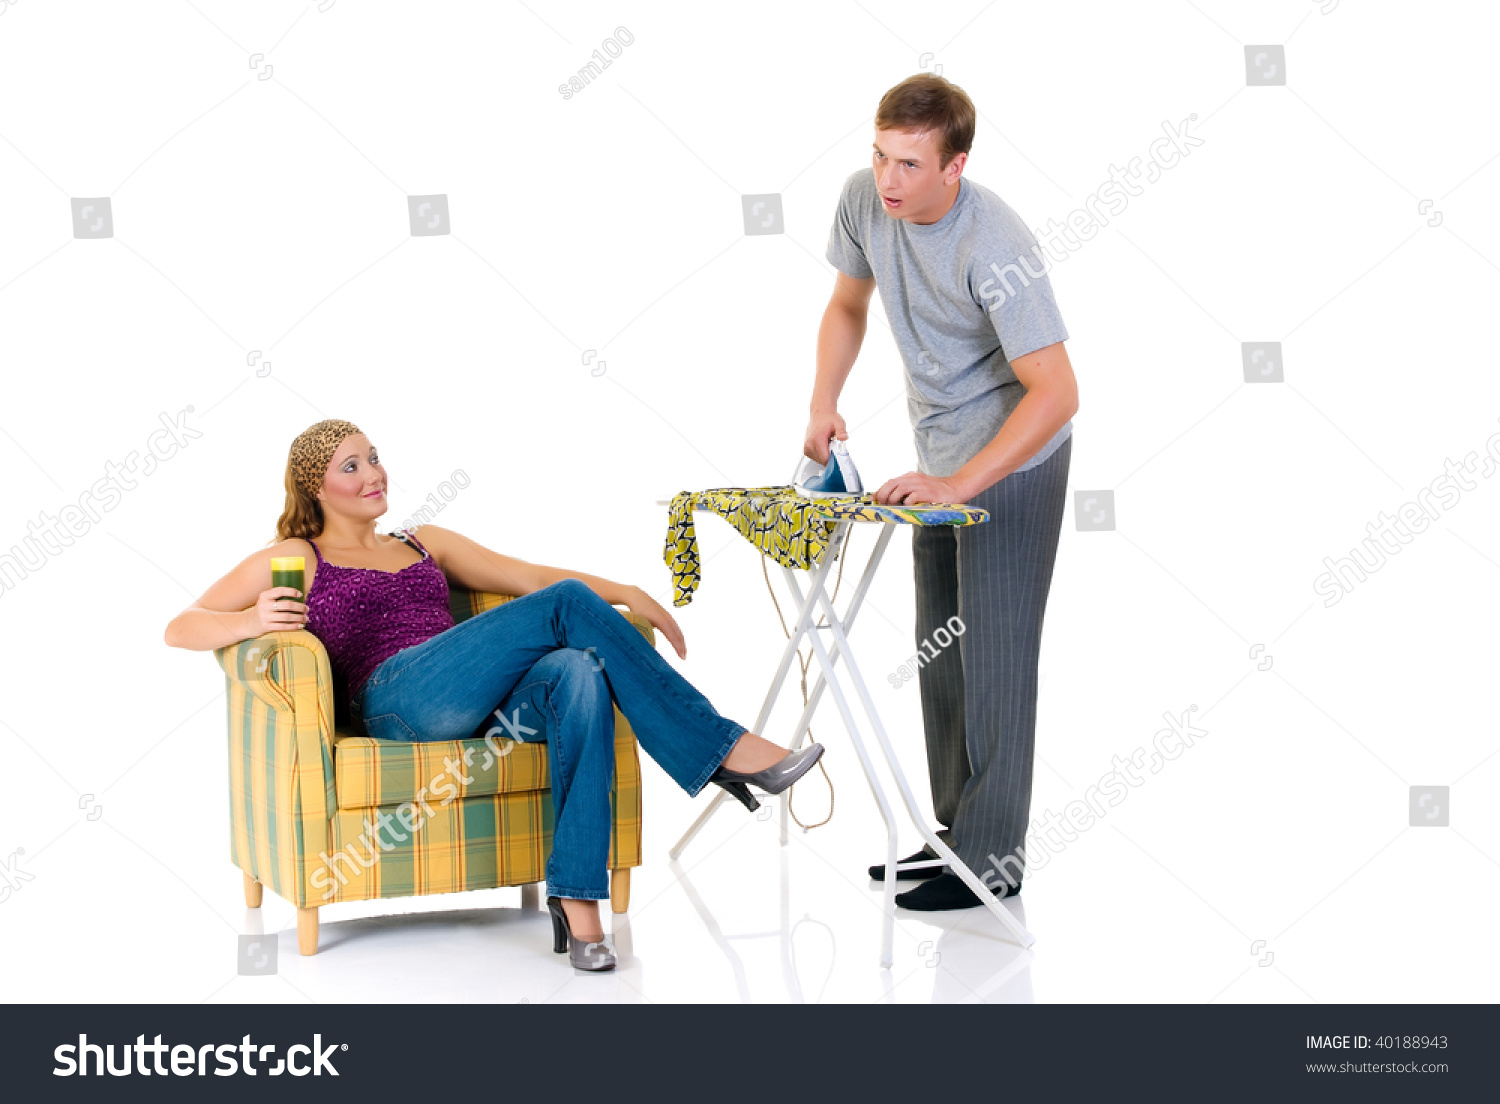 3ce826ceeb Young Bossy Woman Sofa Man Ironing Stock Photo (Edit Now) 40188943 ...